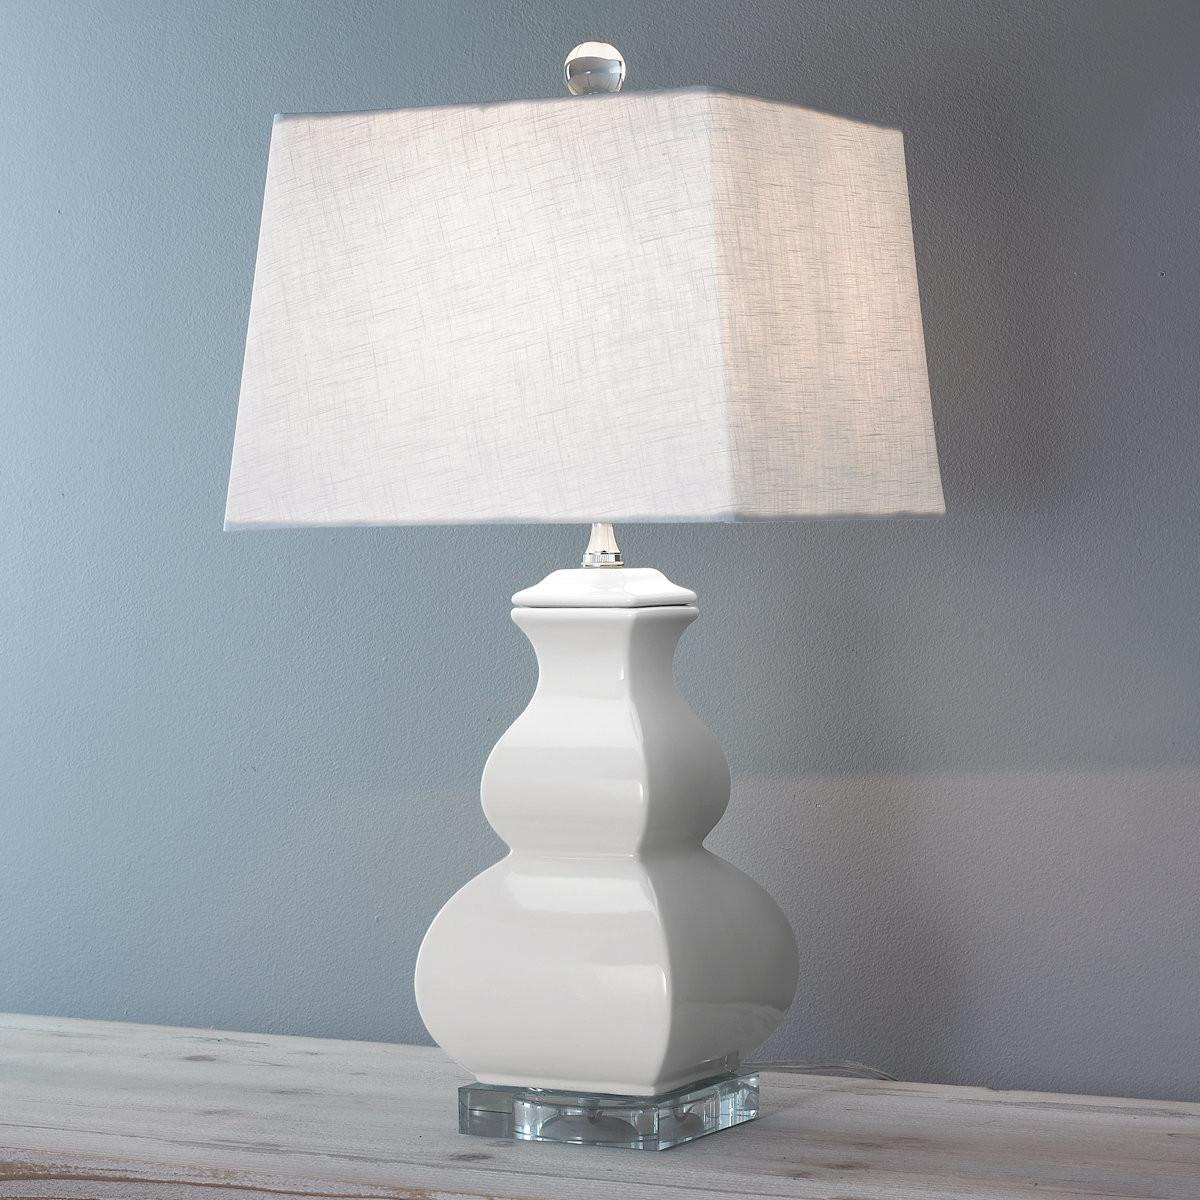 Porcelain Square Gourd Table Lamp Small Shades Light